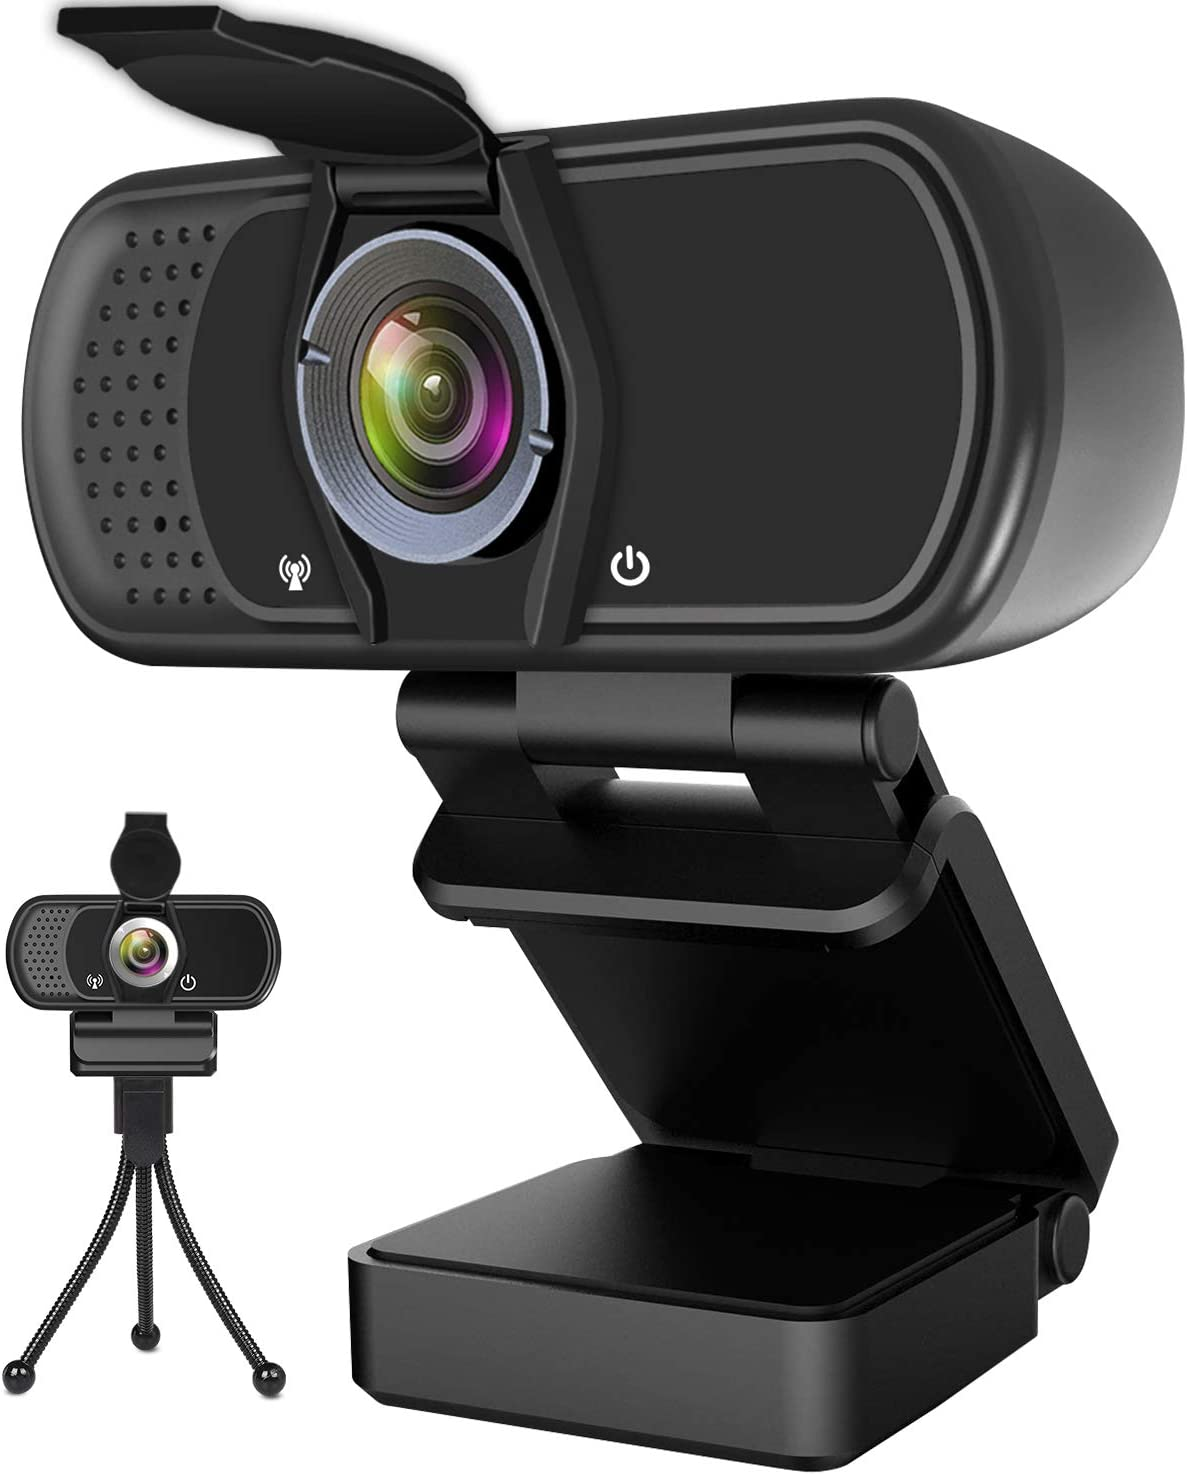 Hrayzan USB Webcams with 110 Degree Wide Angle